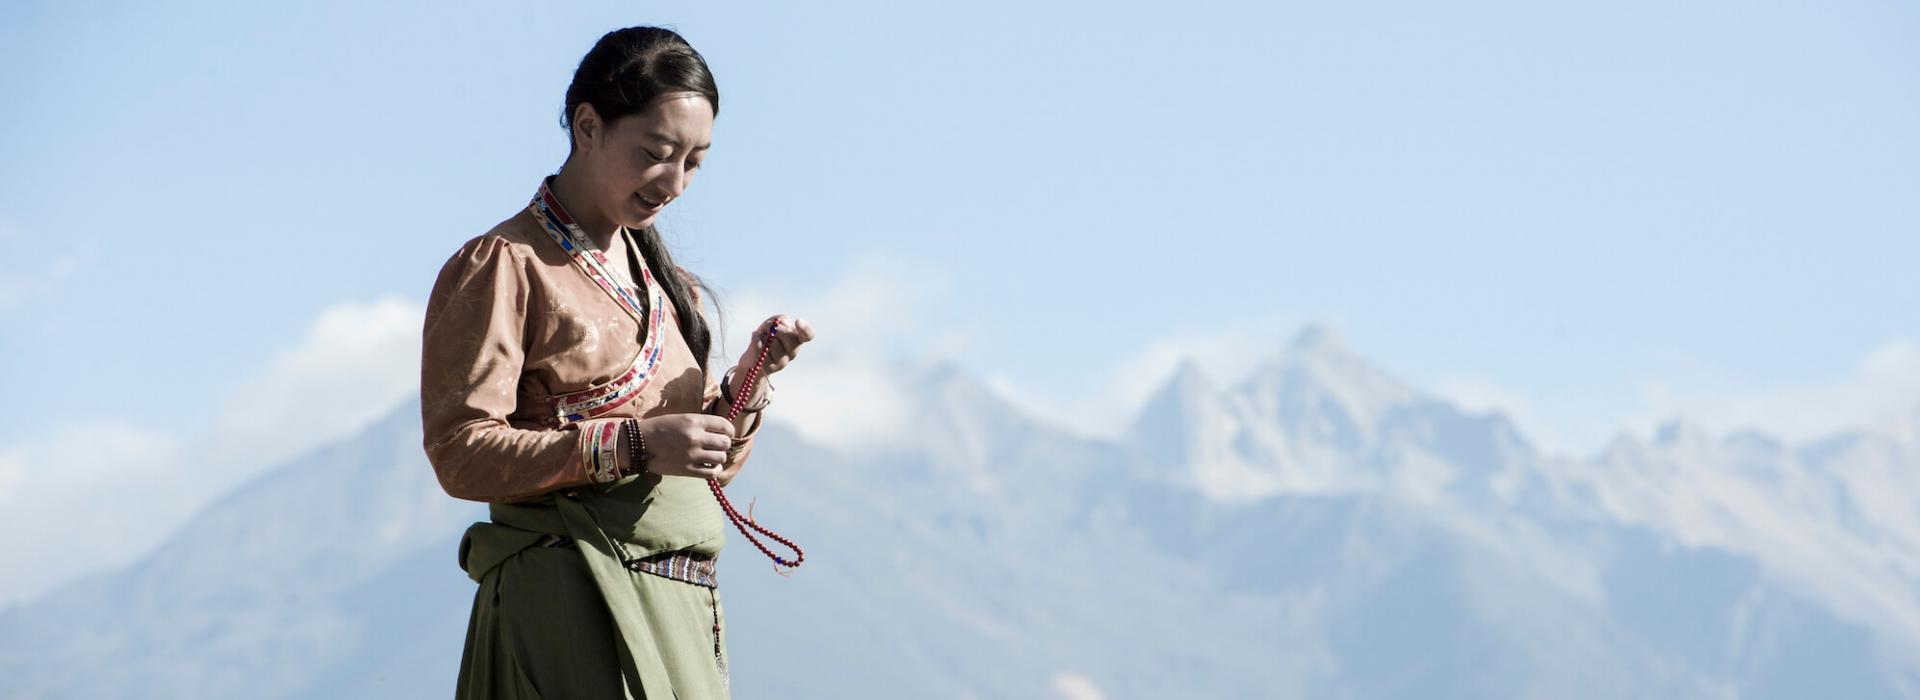 Girl on field near mountains holding a traditional necklace in her hands.